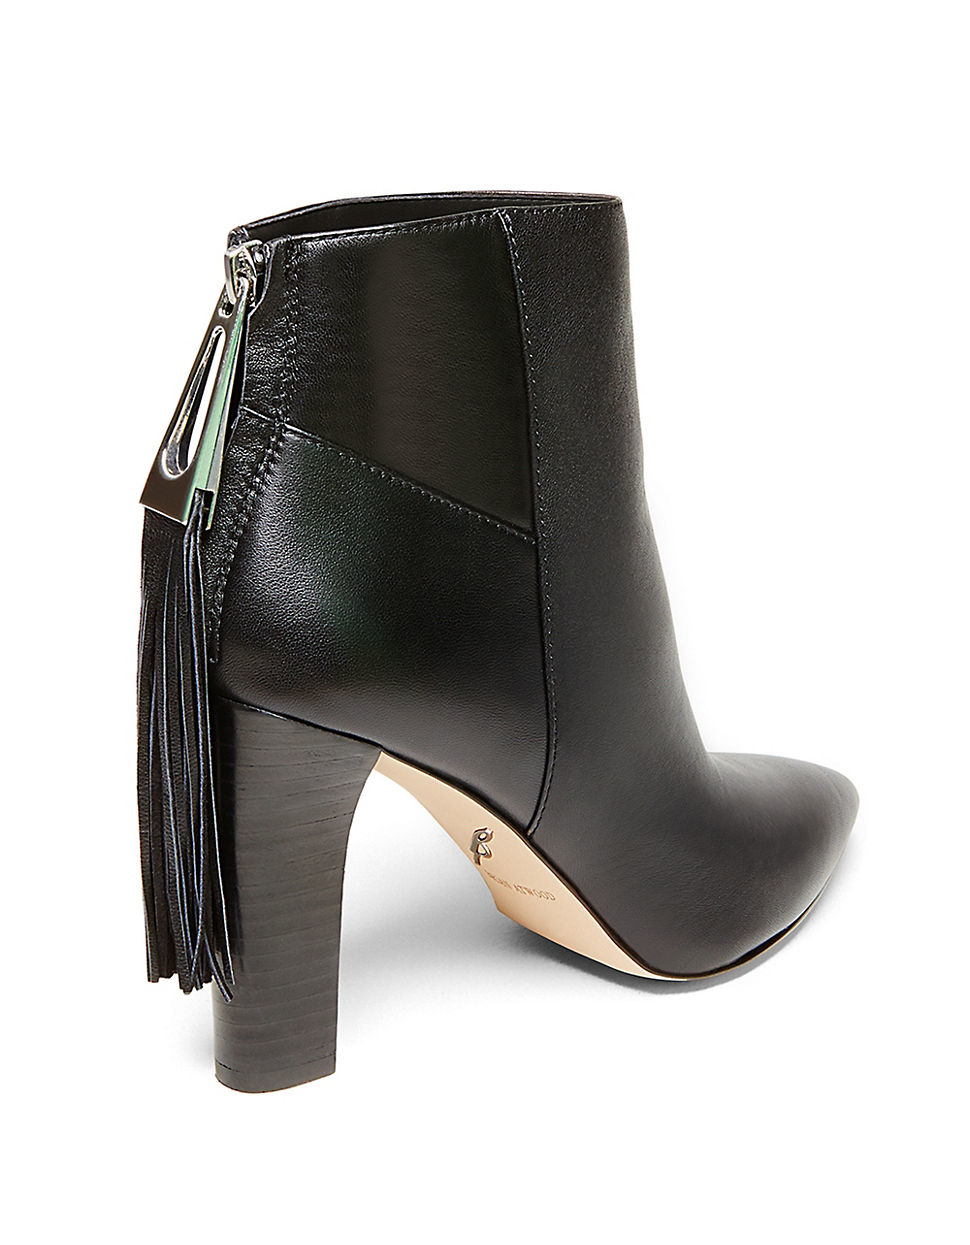 BRIAN ATWOOD Leather Ankle Boots 9mS32